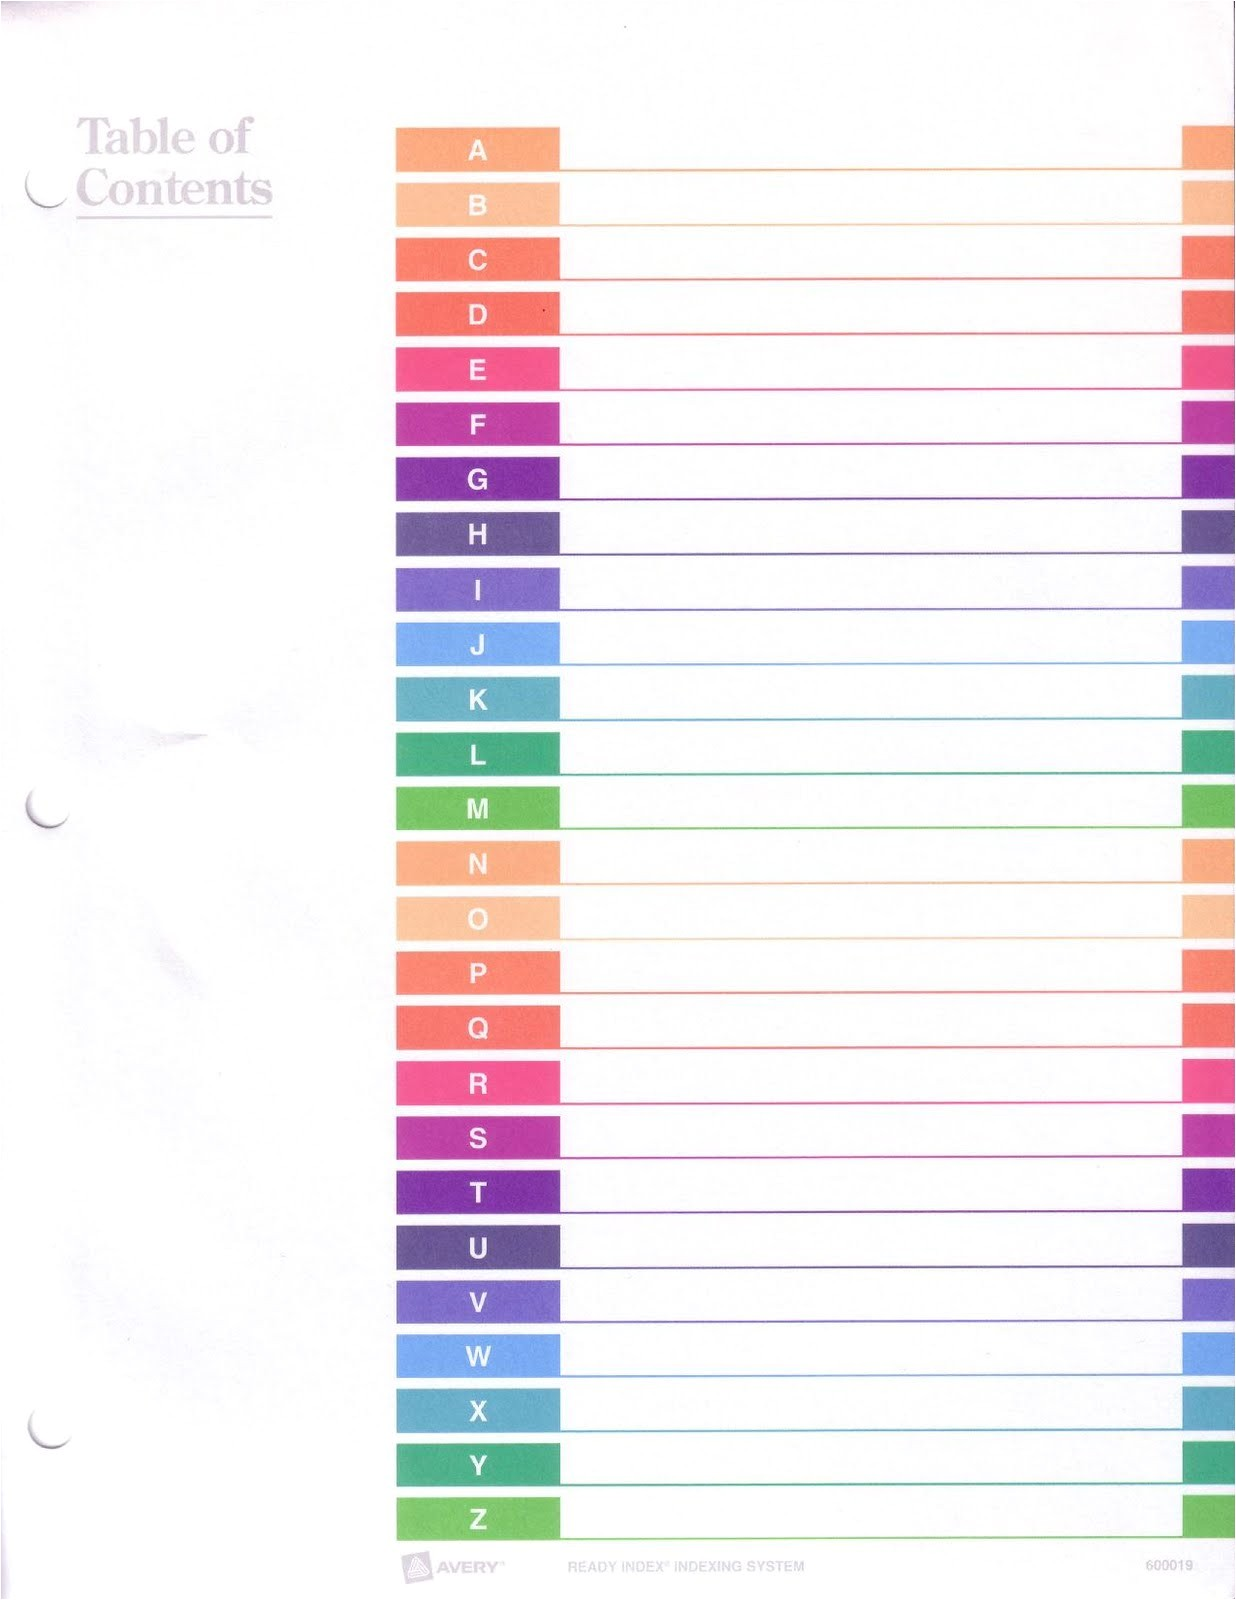 Avery 8 Tab Index Template Avery Ready Index Tabs Template Pictures to Pin On